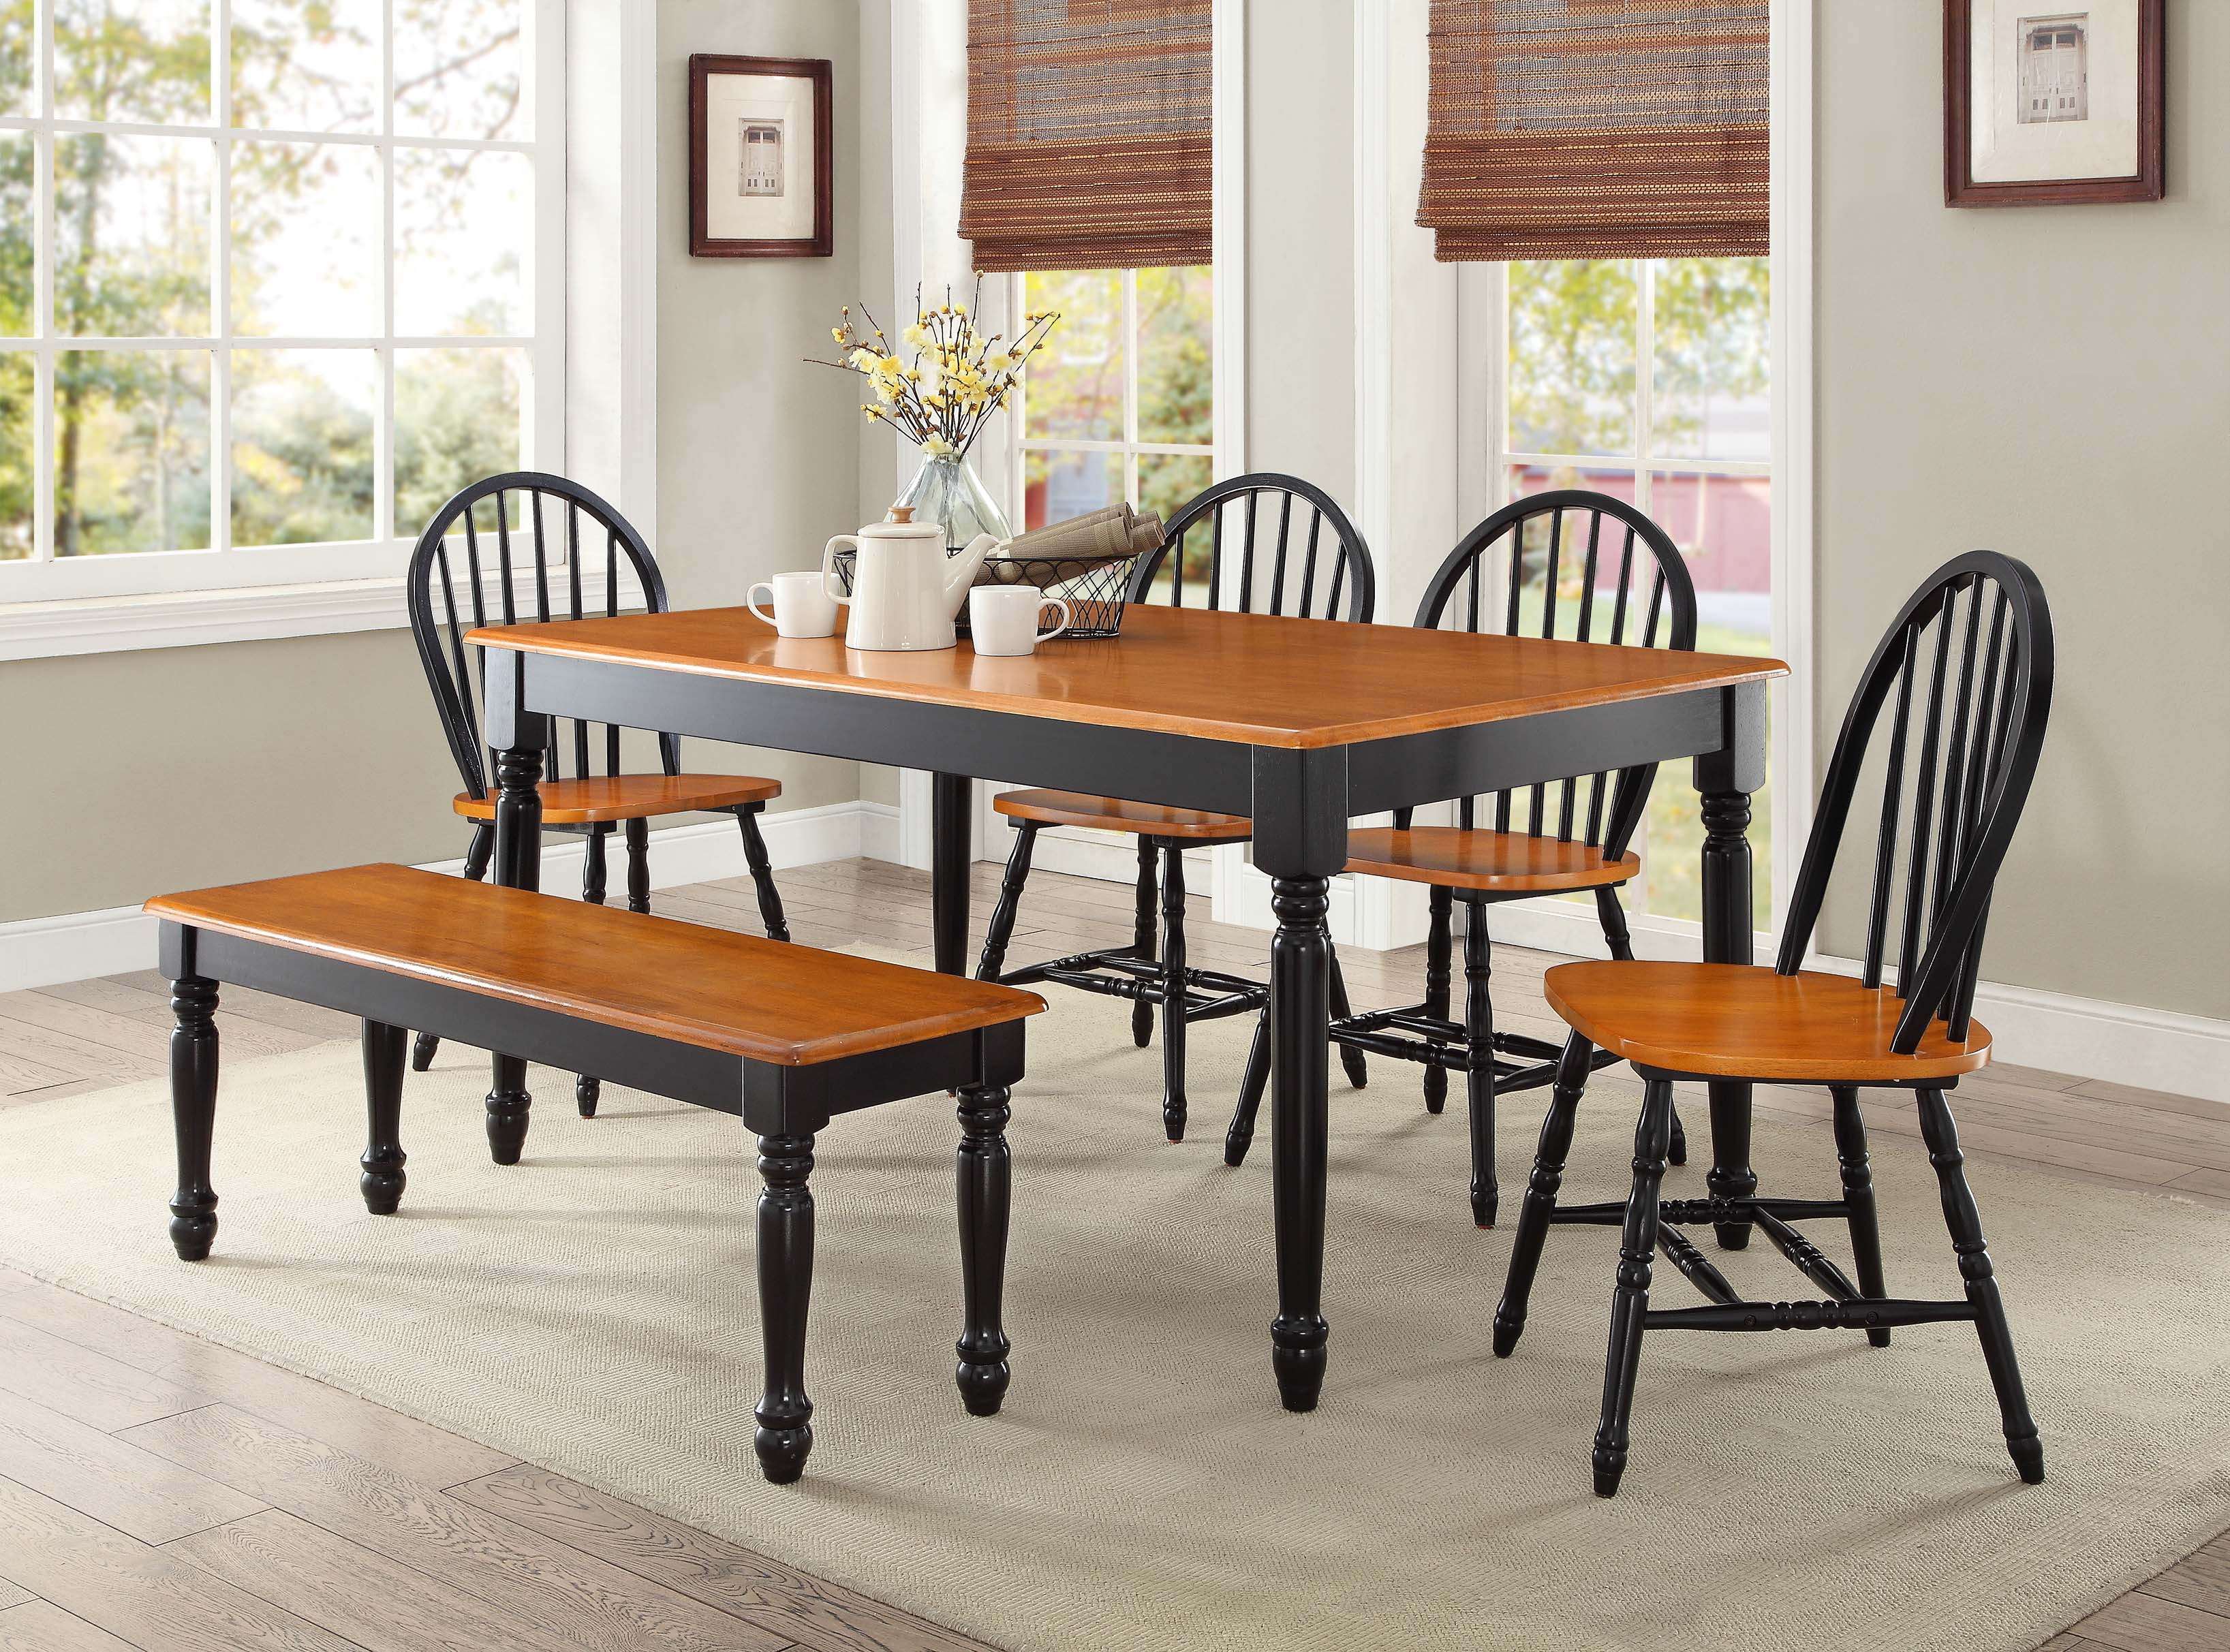 Northwoods 3 Piece Dining Sets In Popular Black Dinner Table Set & Black Dining Room Table U2013 Why You (#10 of 20)